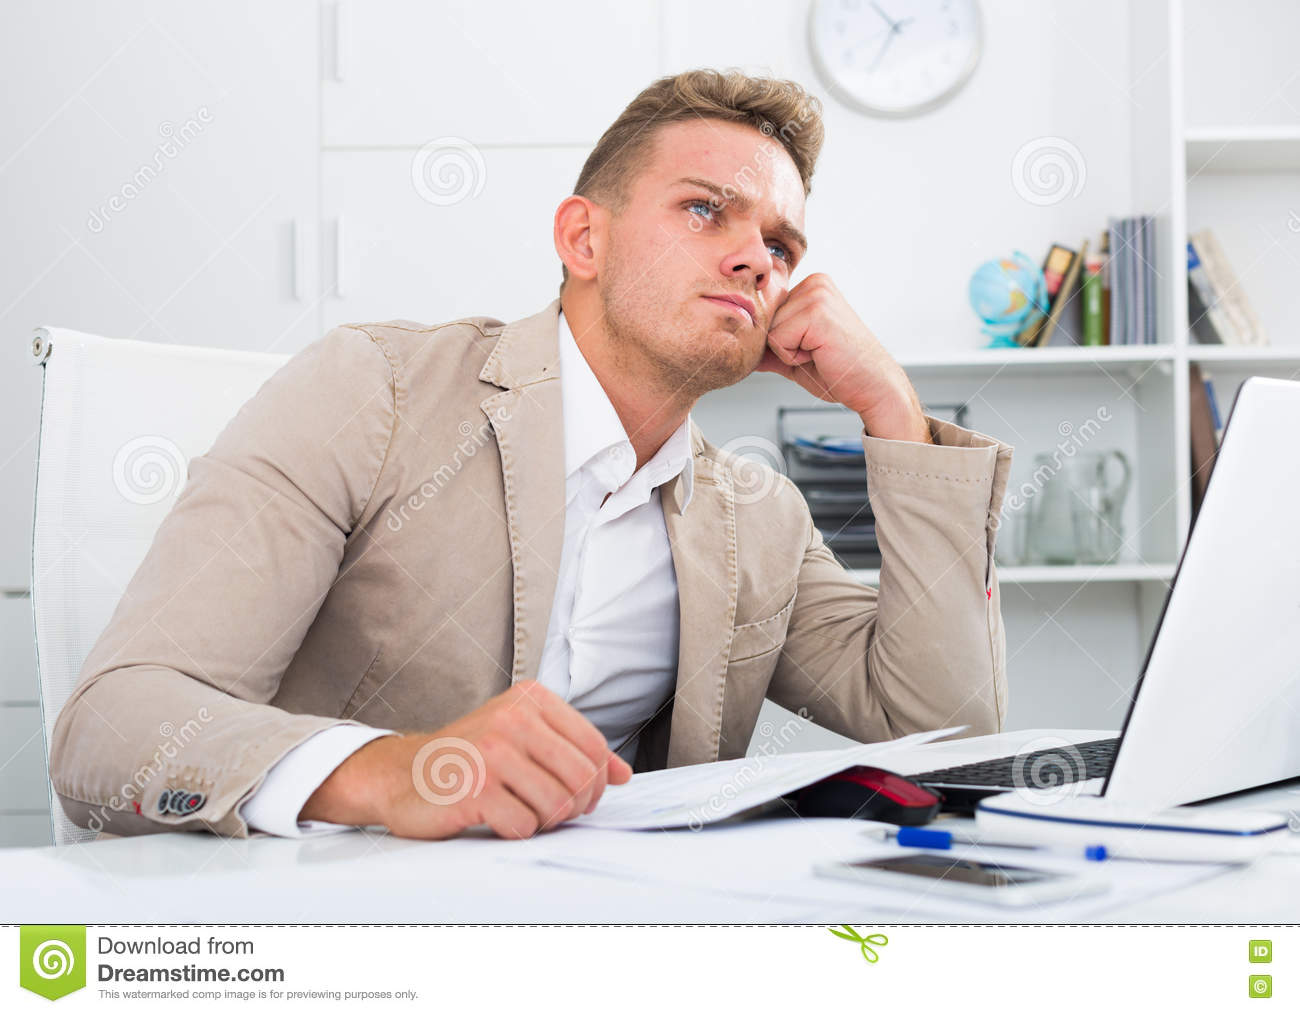 tired essay It sounds contradicting, but the lack of exercise can make you even more tired a study conducted by the university of georgia found that exercising for twenty minutes per day three times per week decreased fatigue in sedentary adults.